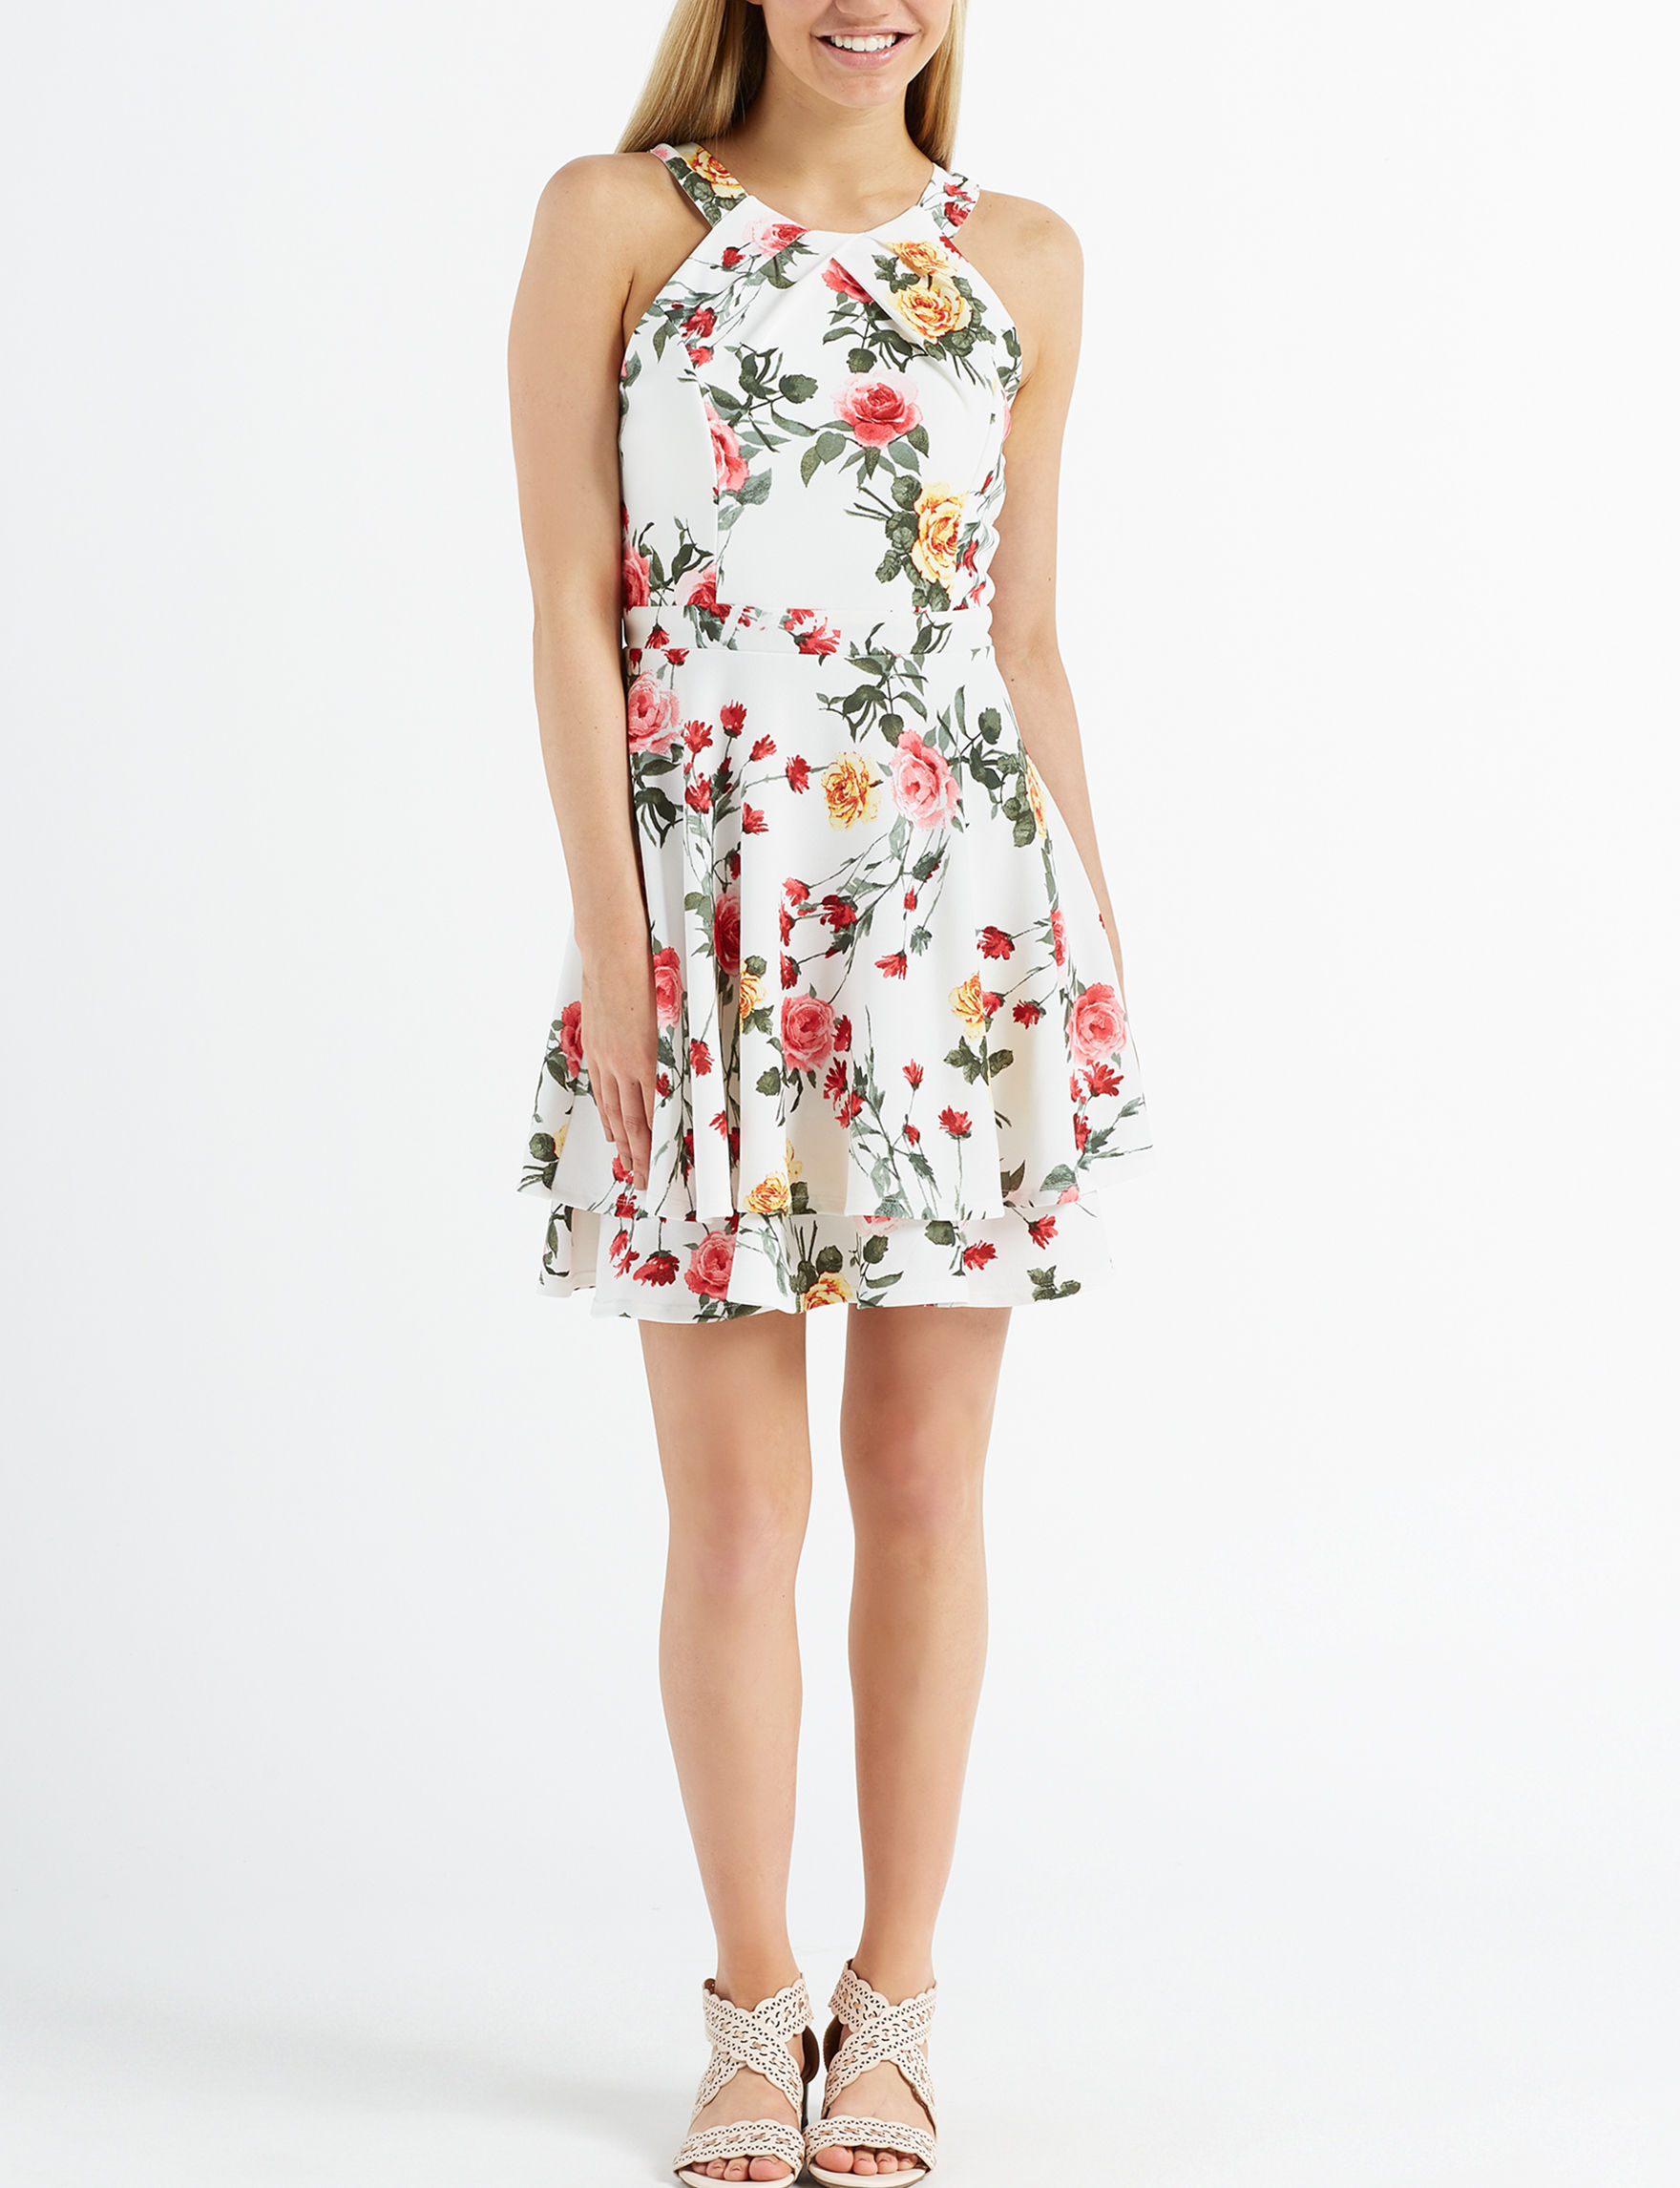 Emerald Sundae White Floral Cocktail & Party Fit & Flare Dresses Halter